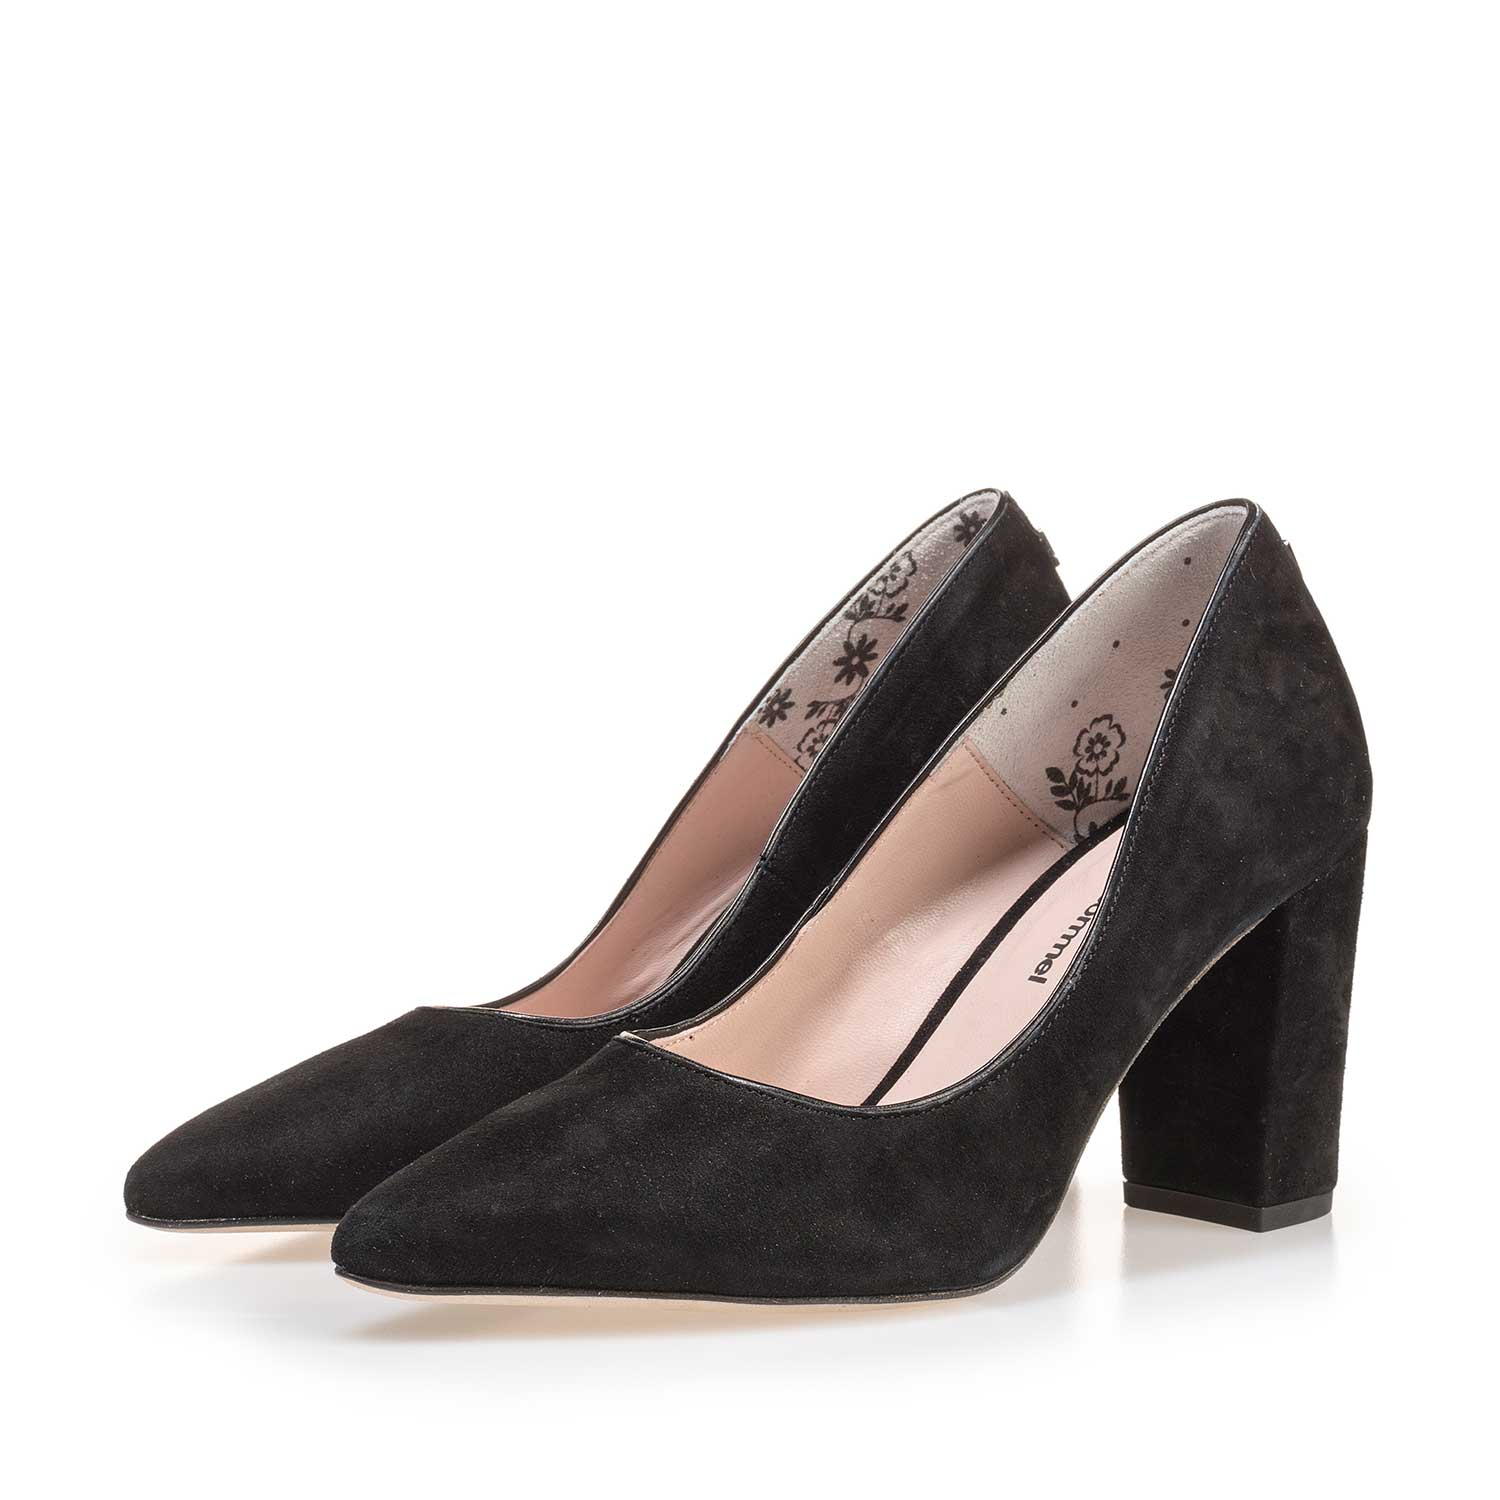 85227/05 - Black suede leather pumps